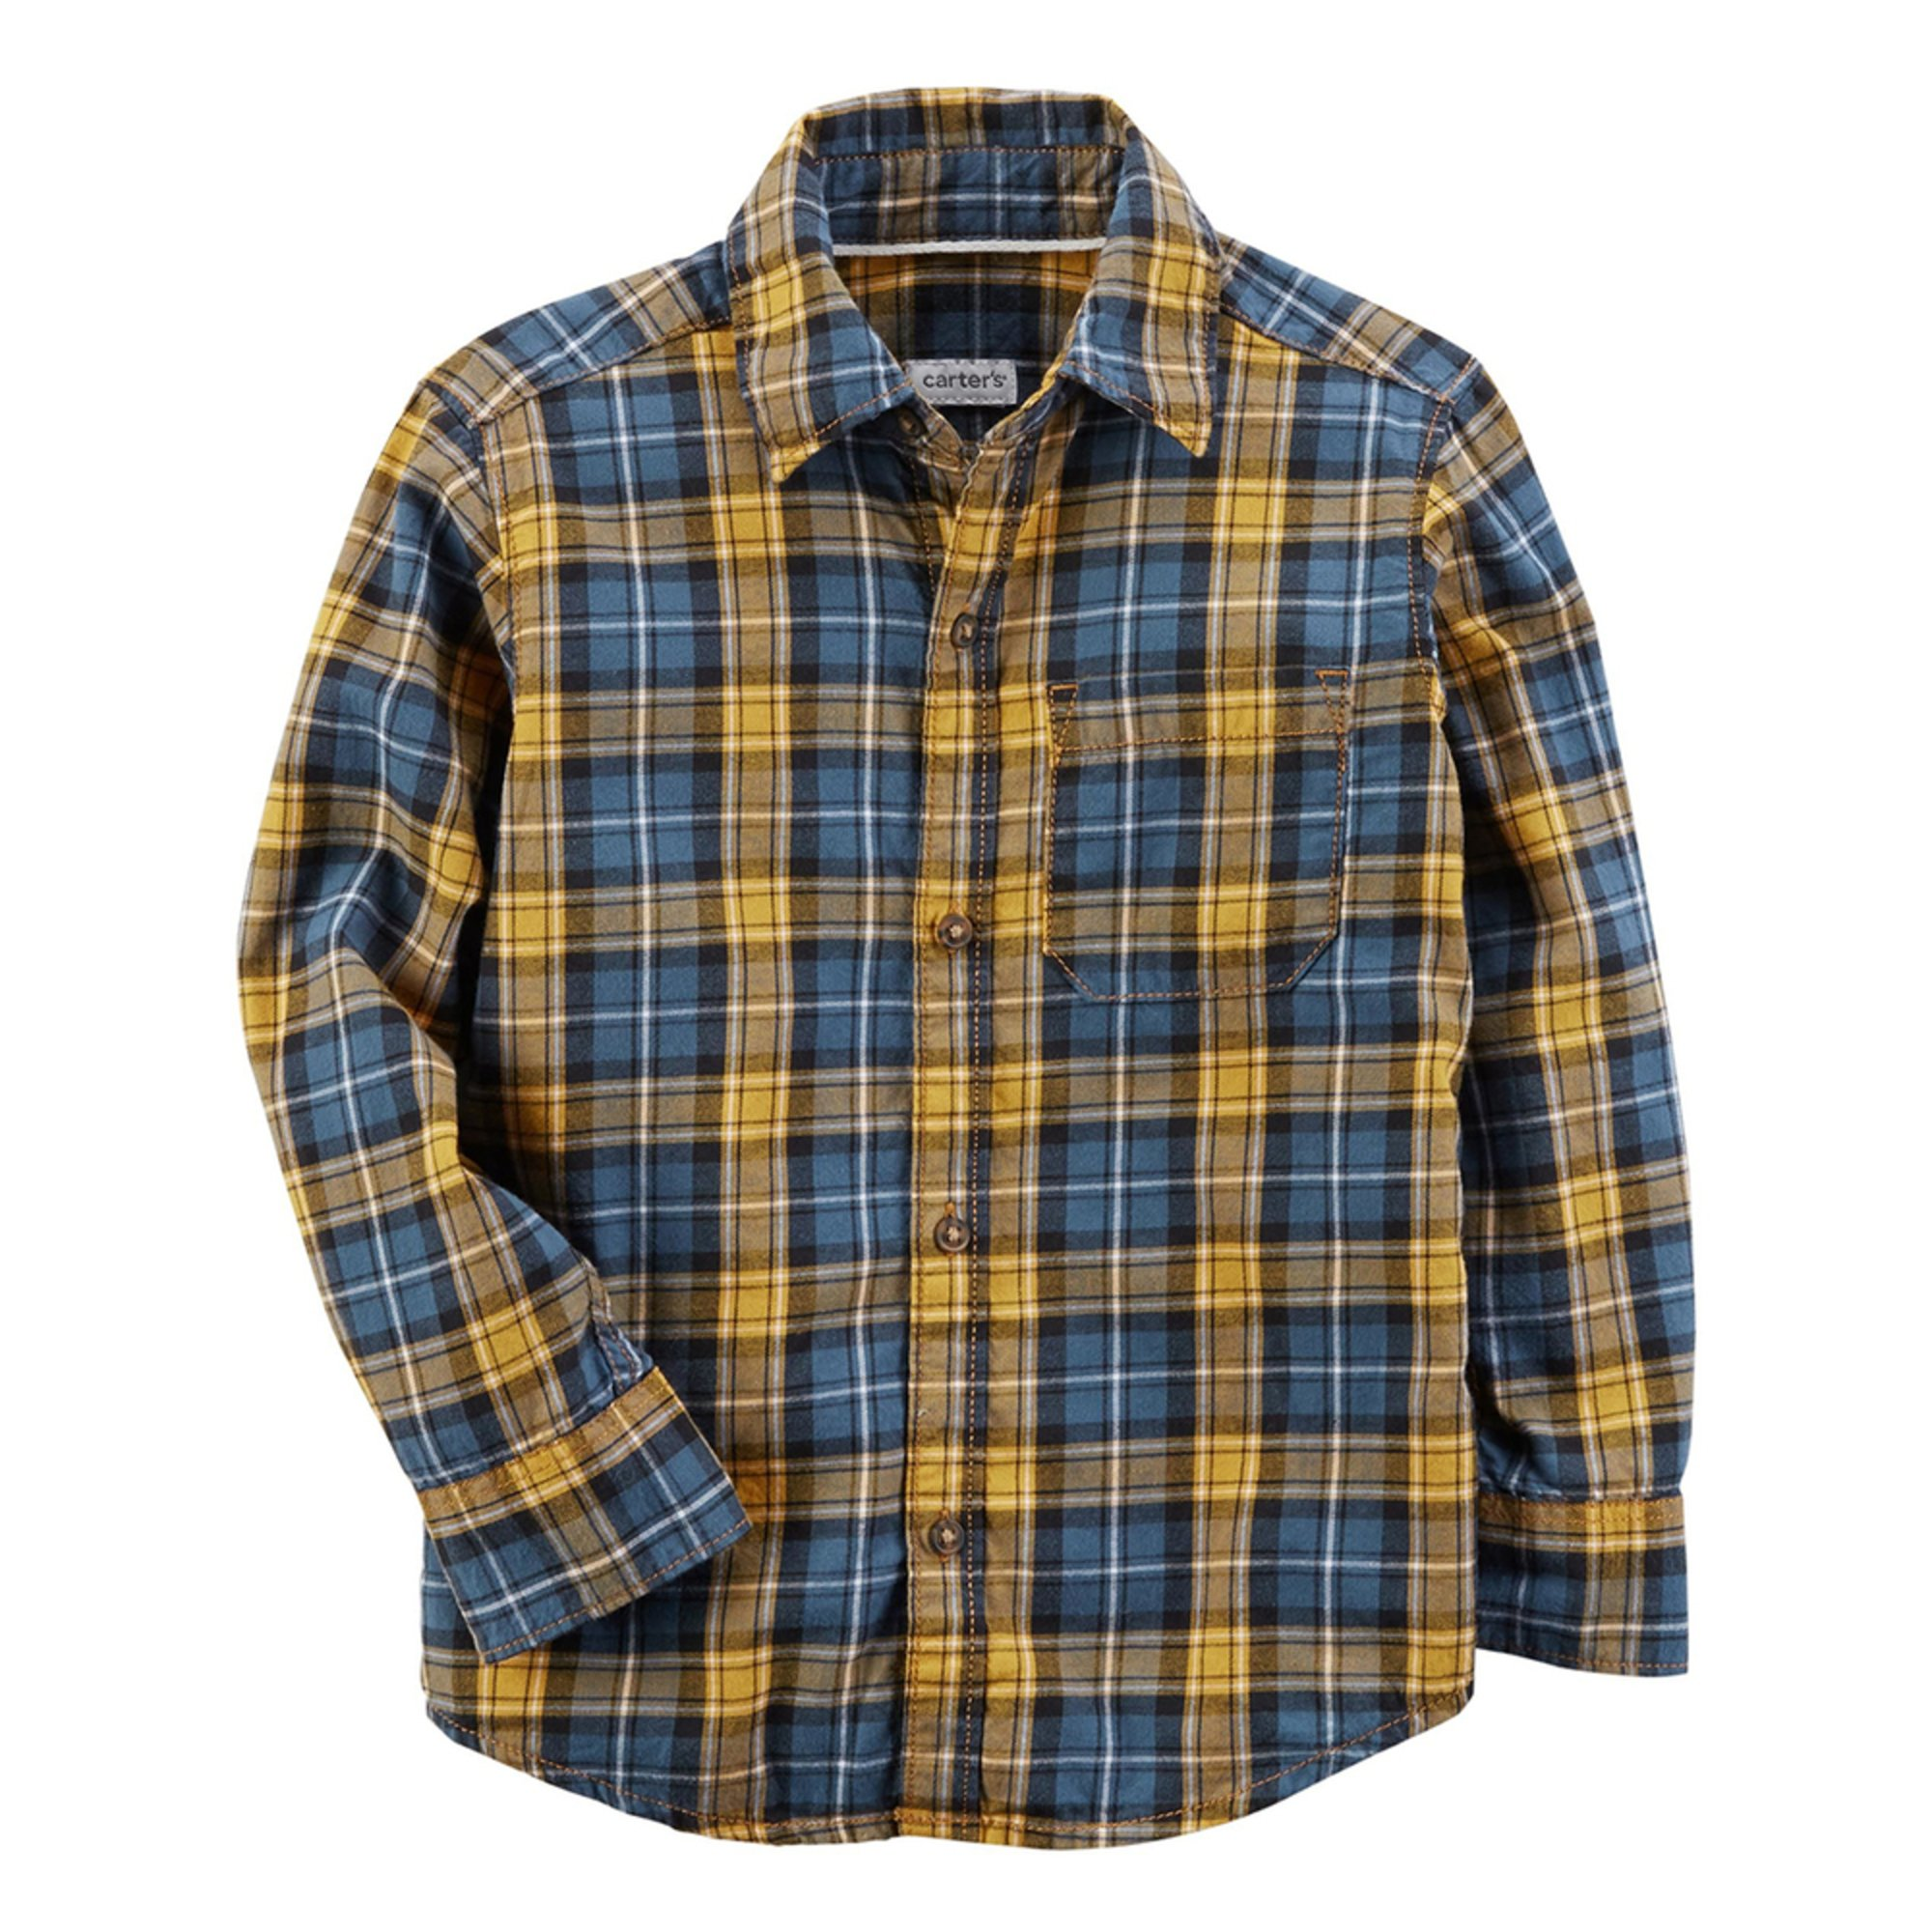 A plaid shirt tucked into khakis or skinny jeans and matched with a solid colored blazer or cardigan makes for a diverse outfit that harmoniously works for many occasions. Of course, you can always throw an unbuttoned plaid shirt over a tight fitting graphic tee.